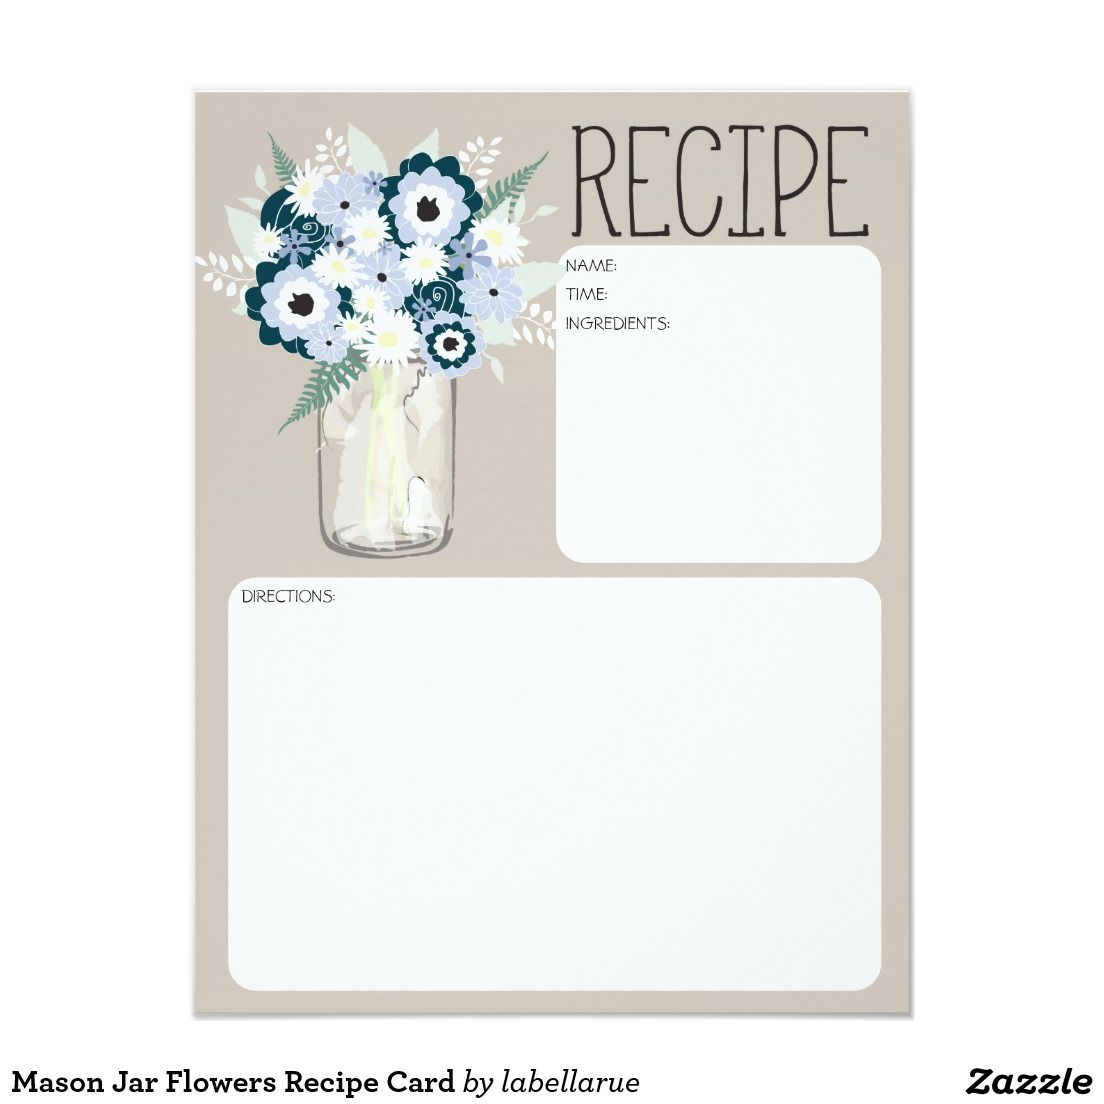 Southern Wedding Reception Food: Mason Jar Flowers Recipe Card